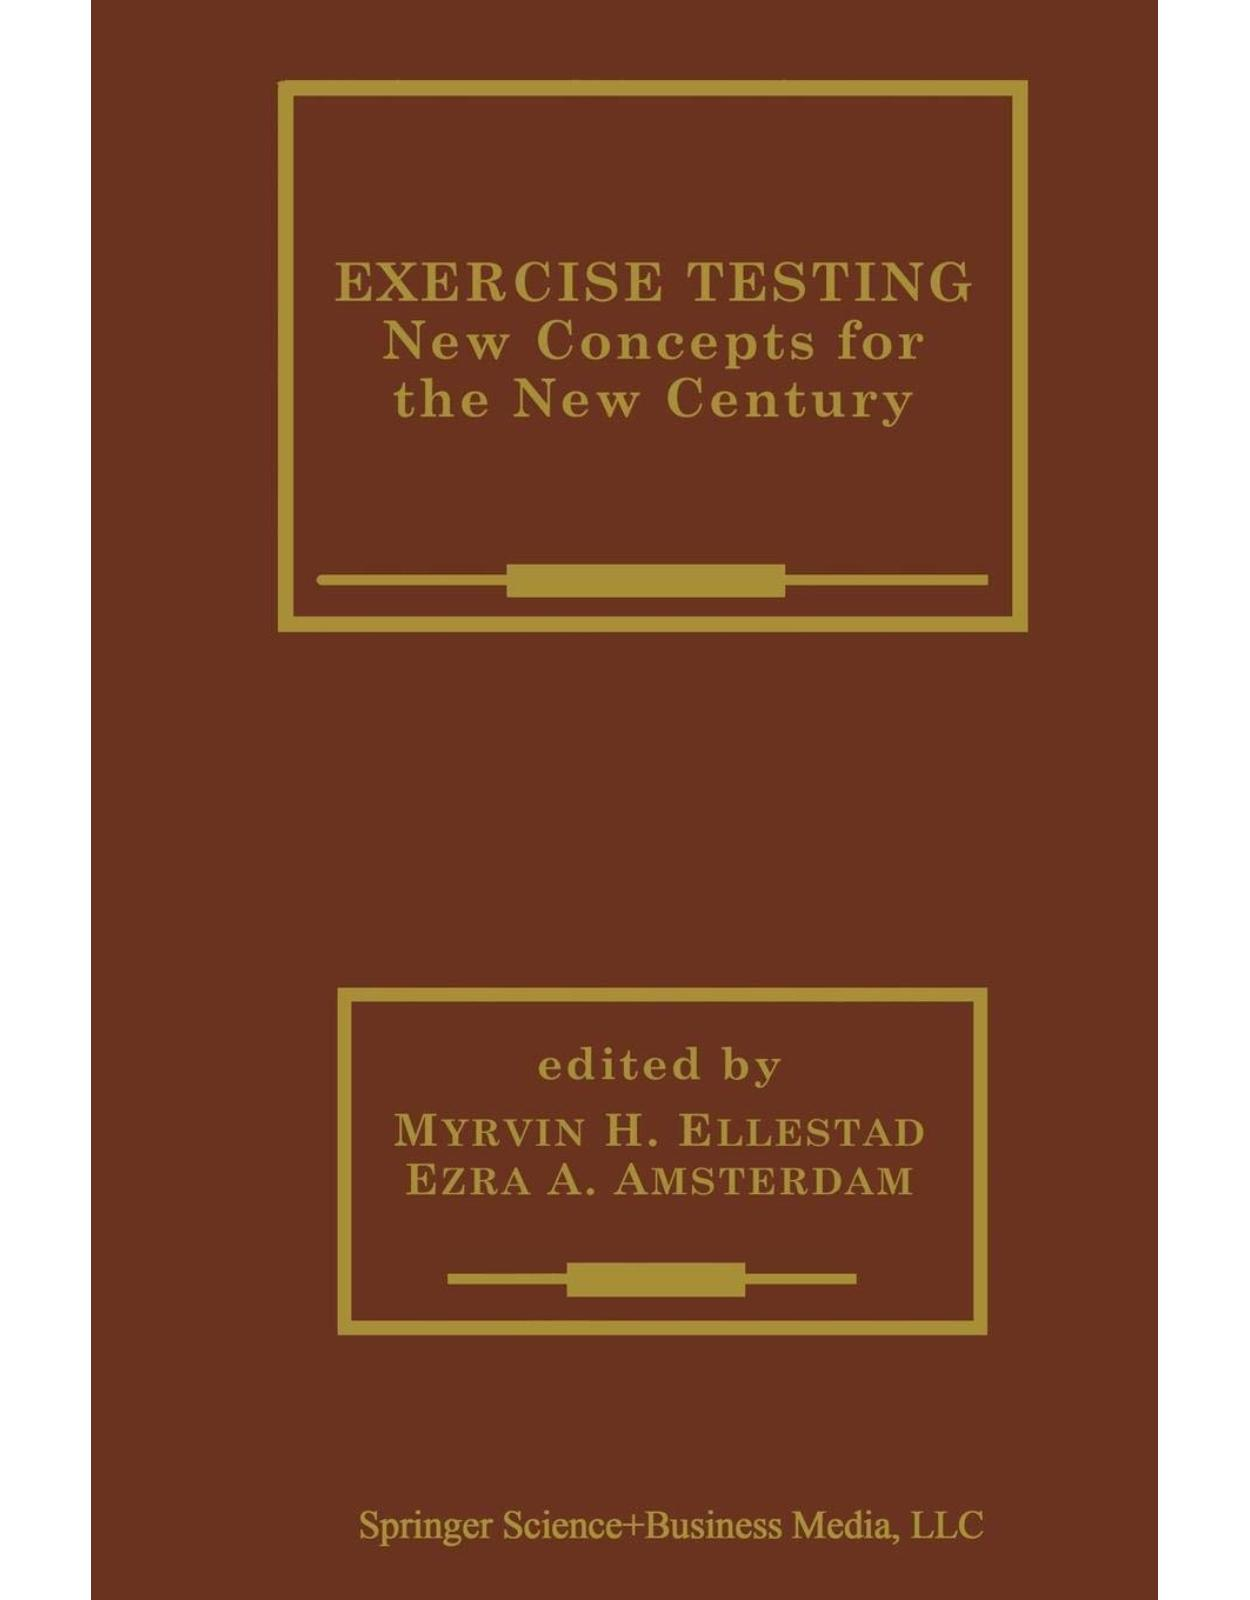 Exercise Testing.New Concepts for the New Century